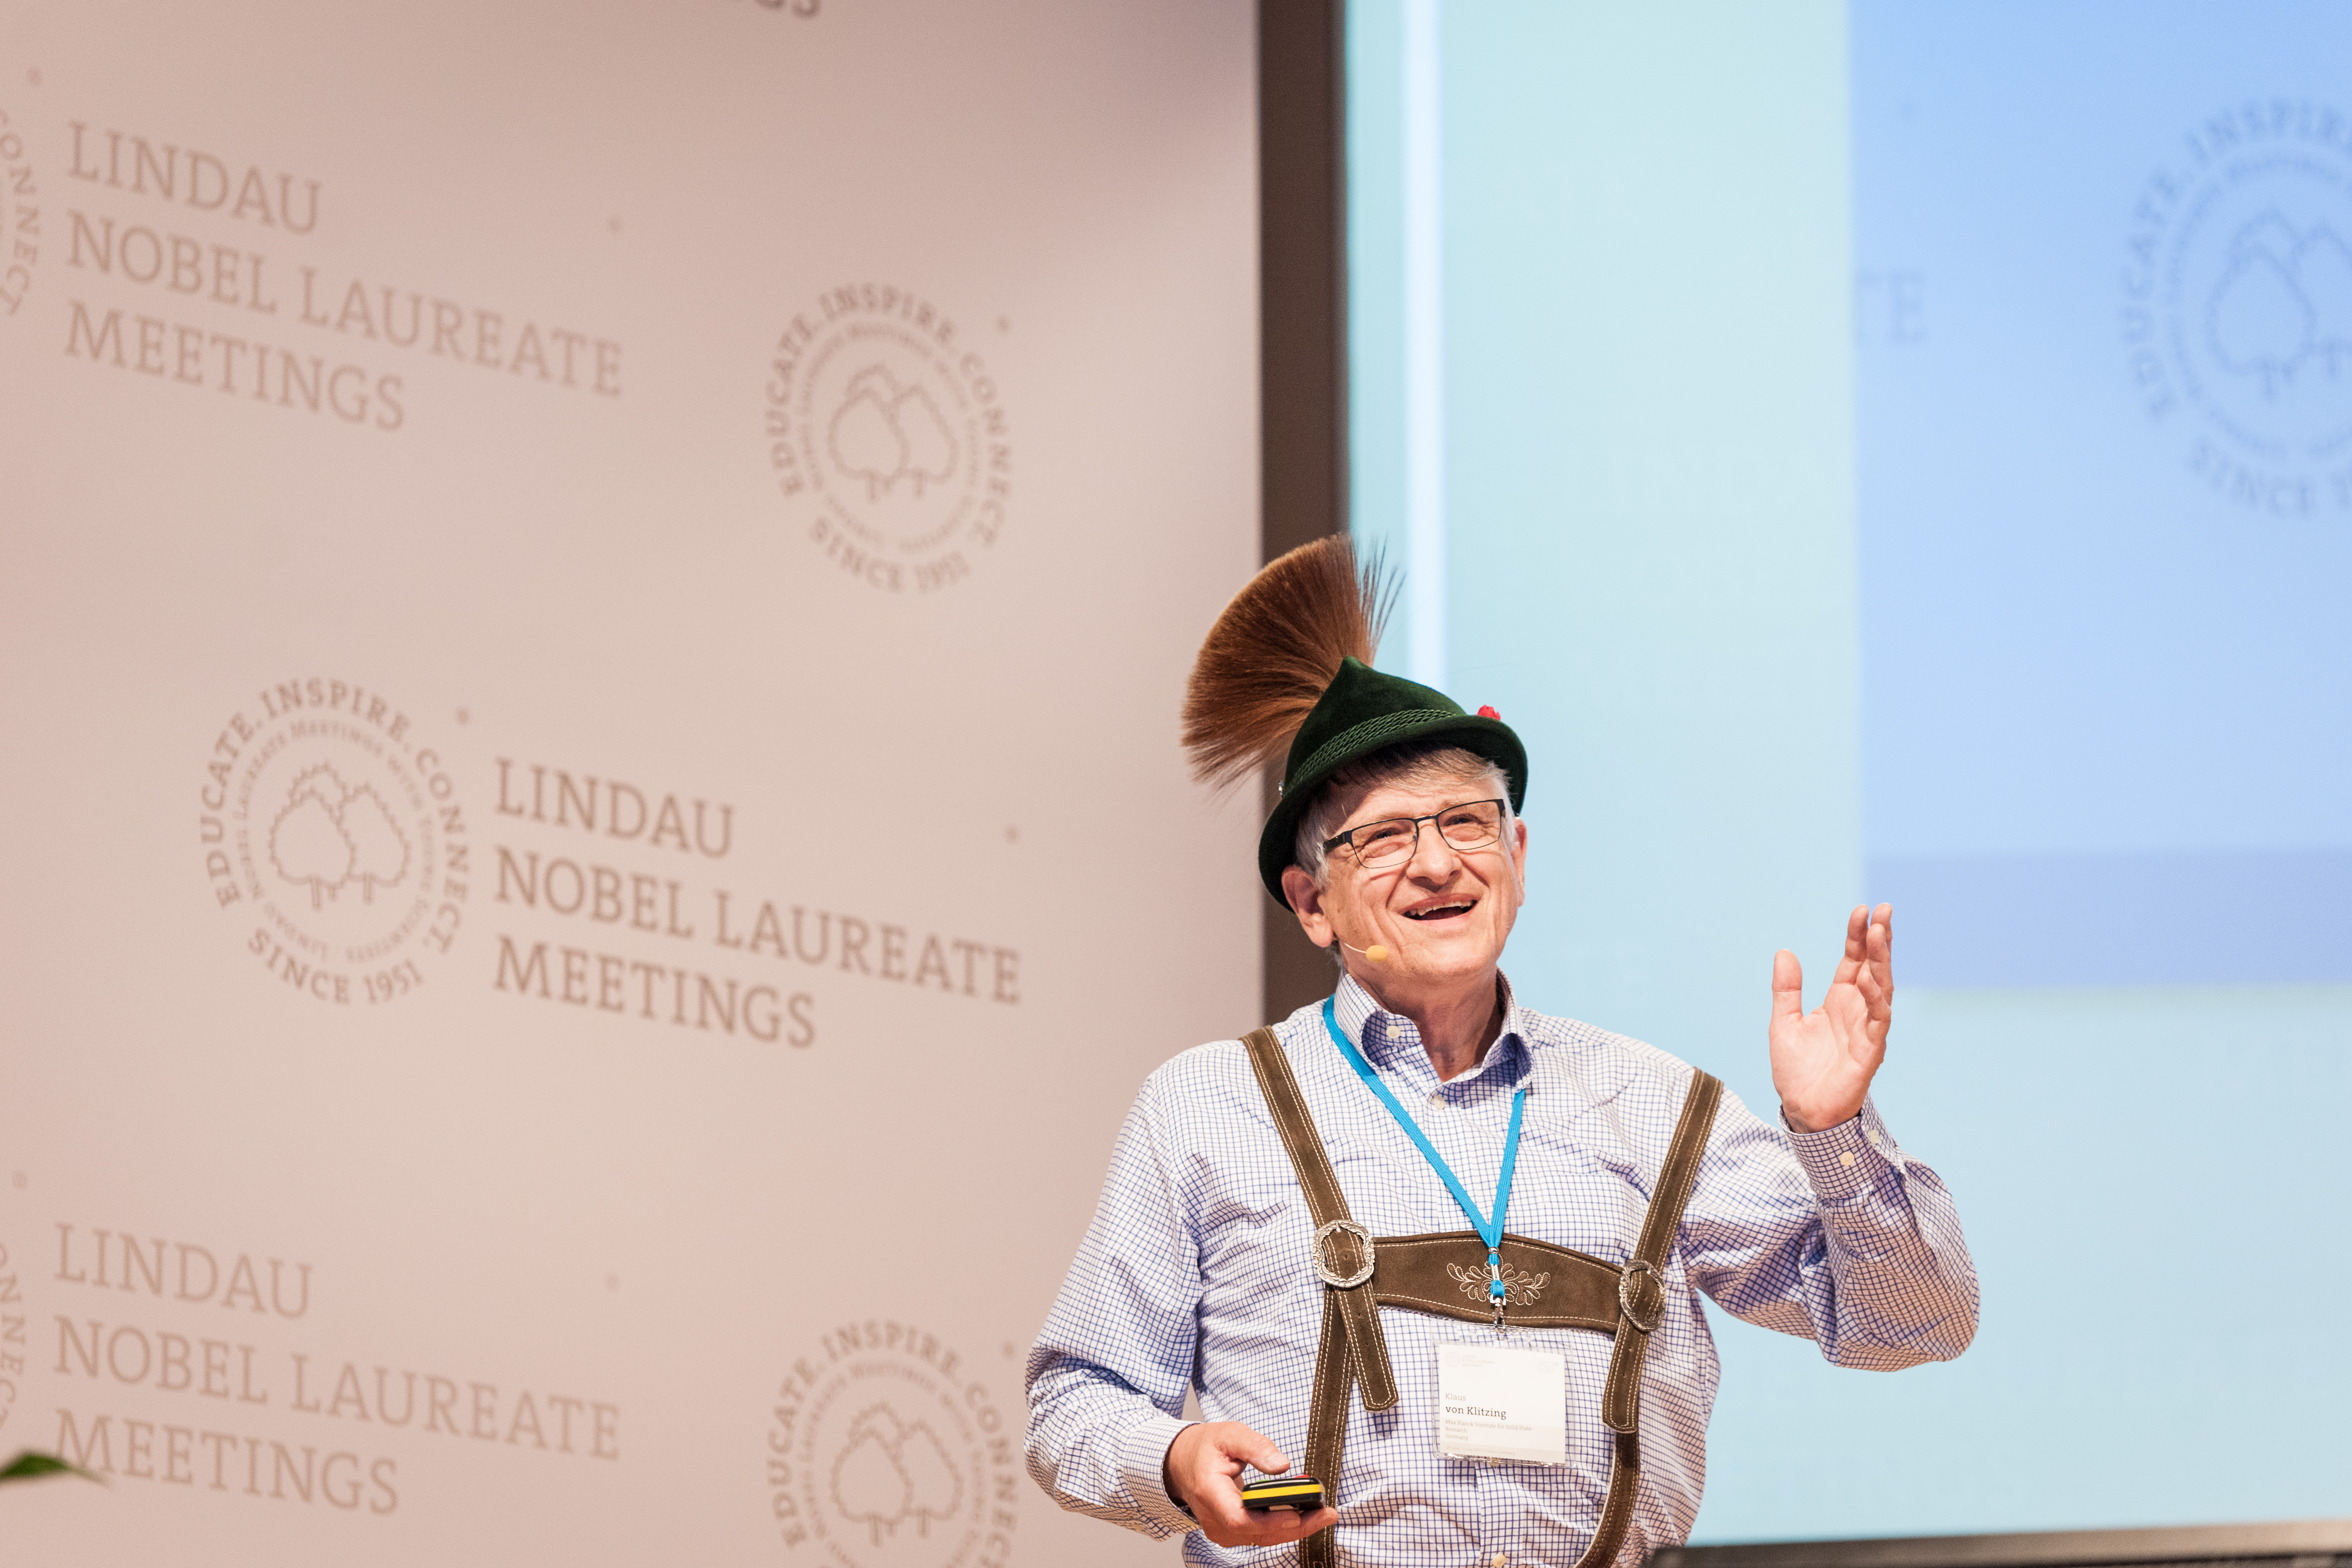 65th Lindau Nobel Laureate Meeting, Lindau, Germany, Picture/Credit: Adrian Schröder/Lindau Nobel Laureate Meetings, 2 July 2015 Bavarian Evening Hosted by Elite Network of Bavaria & Free State of Bavari No Model Release. No Property Release. Free use o